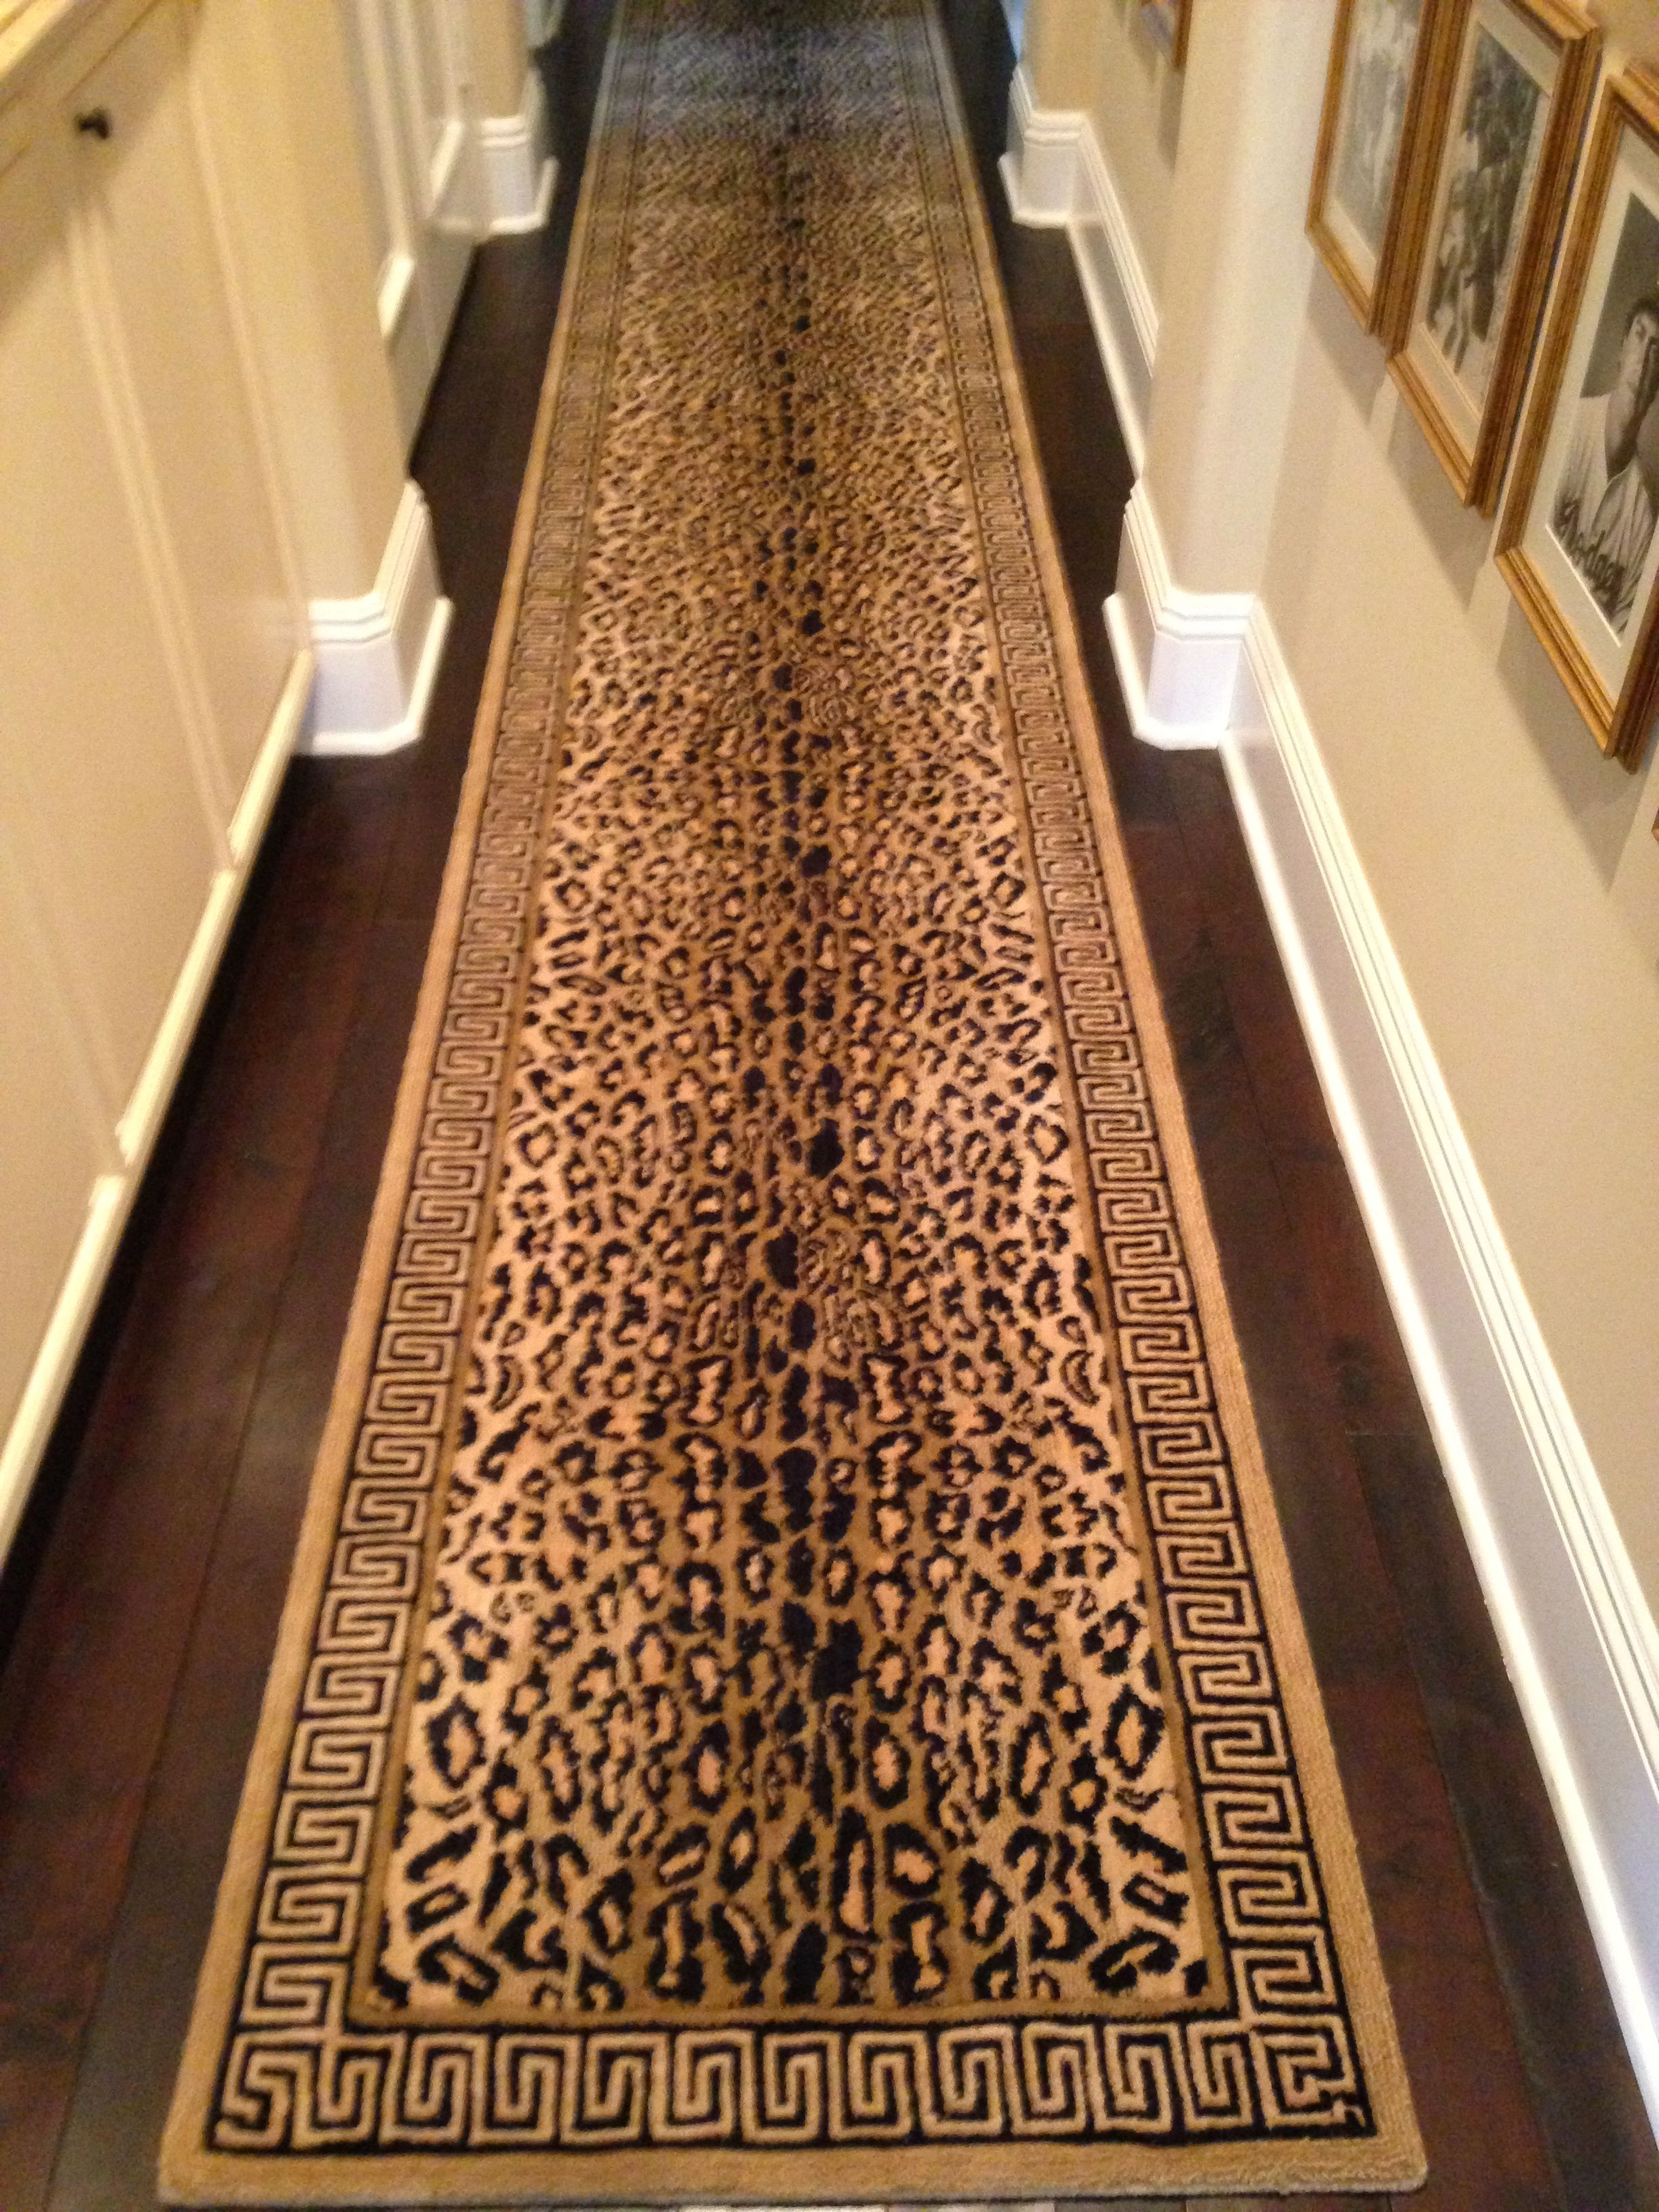 Hemphill S Fine Rugs And Quality Flooring In Orange County Leopard Print Rug Printed Rugs Carpet Installation